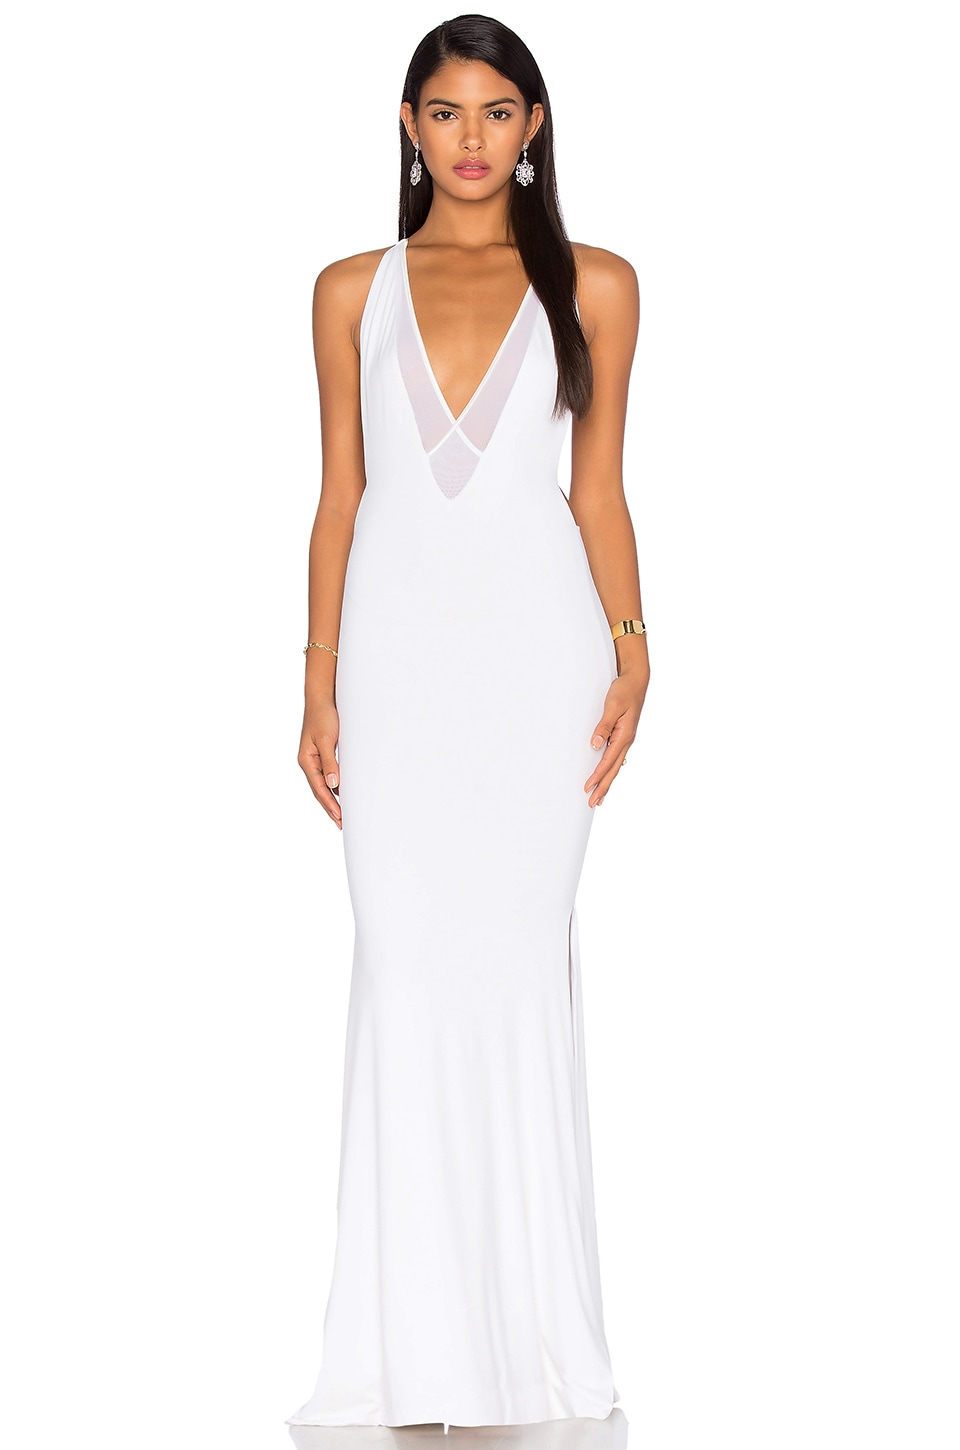 Gemeli Power Dupeyroux Jersey Gown in White